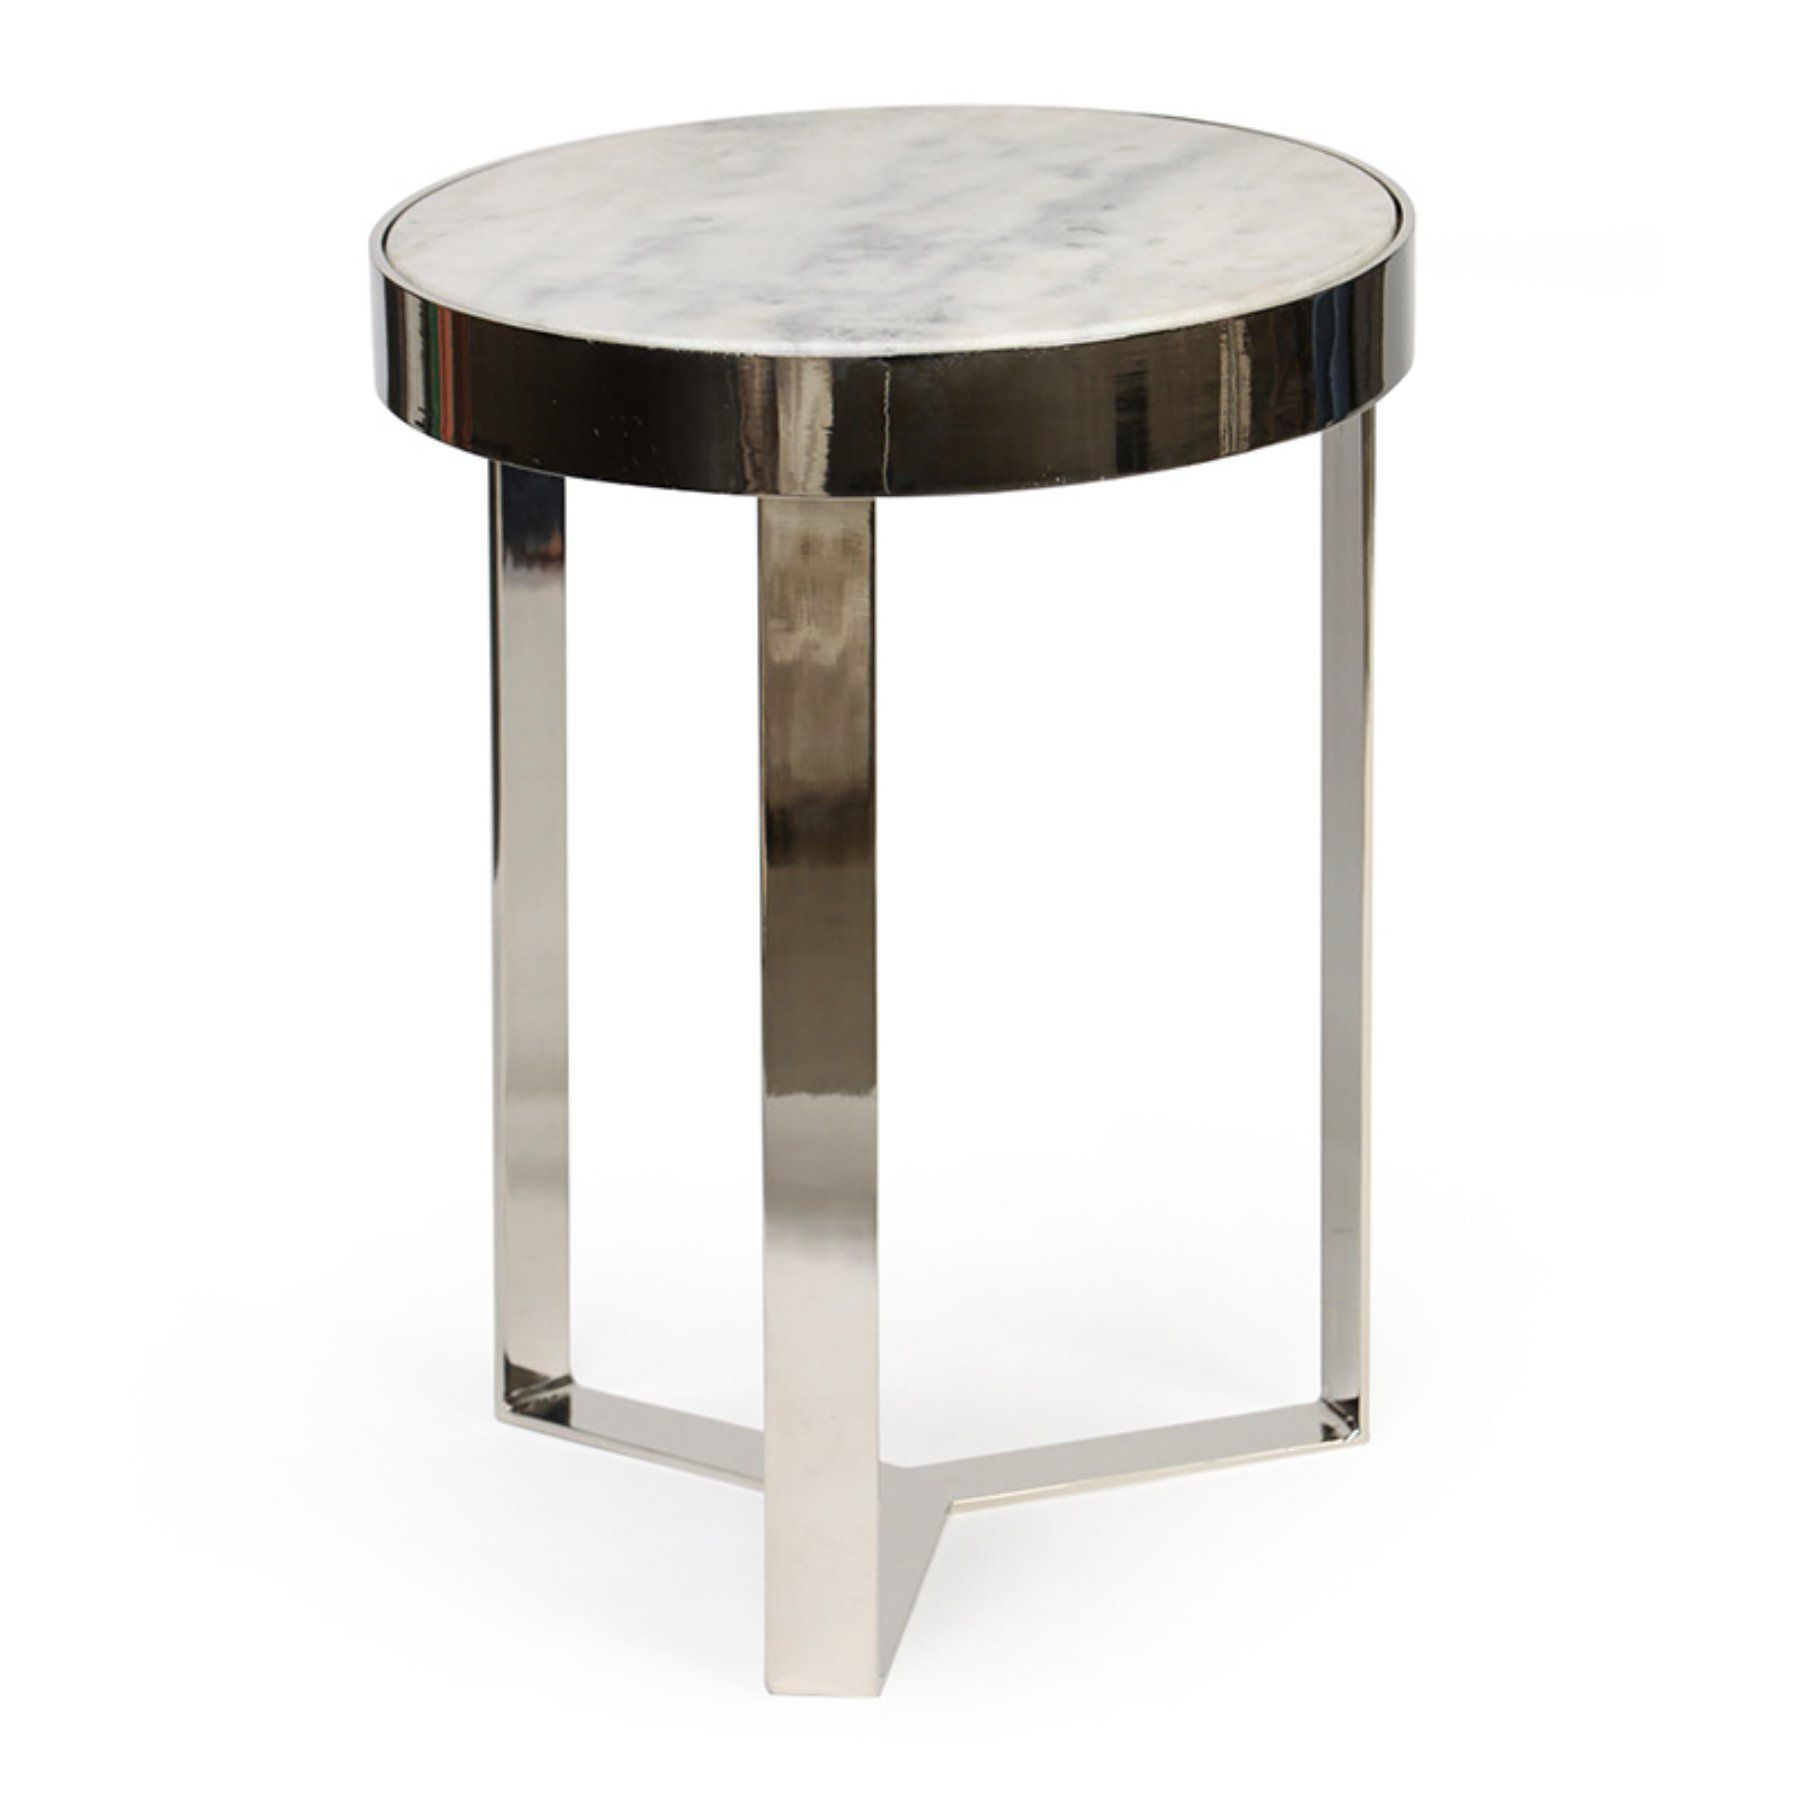 knox and harrison contemporary metal marble accent table polished nickel black home accents nautical furniture round coffee end tables three drawer side antique leather top